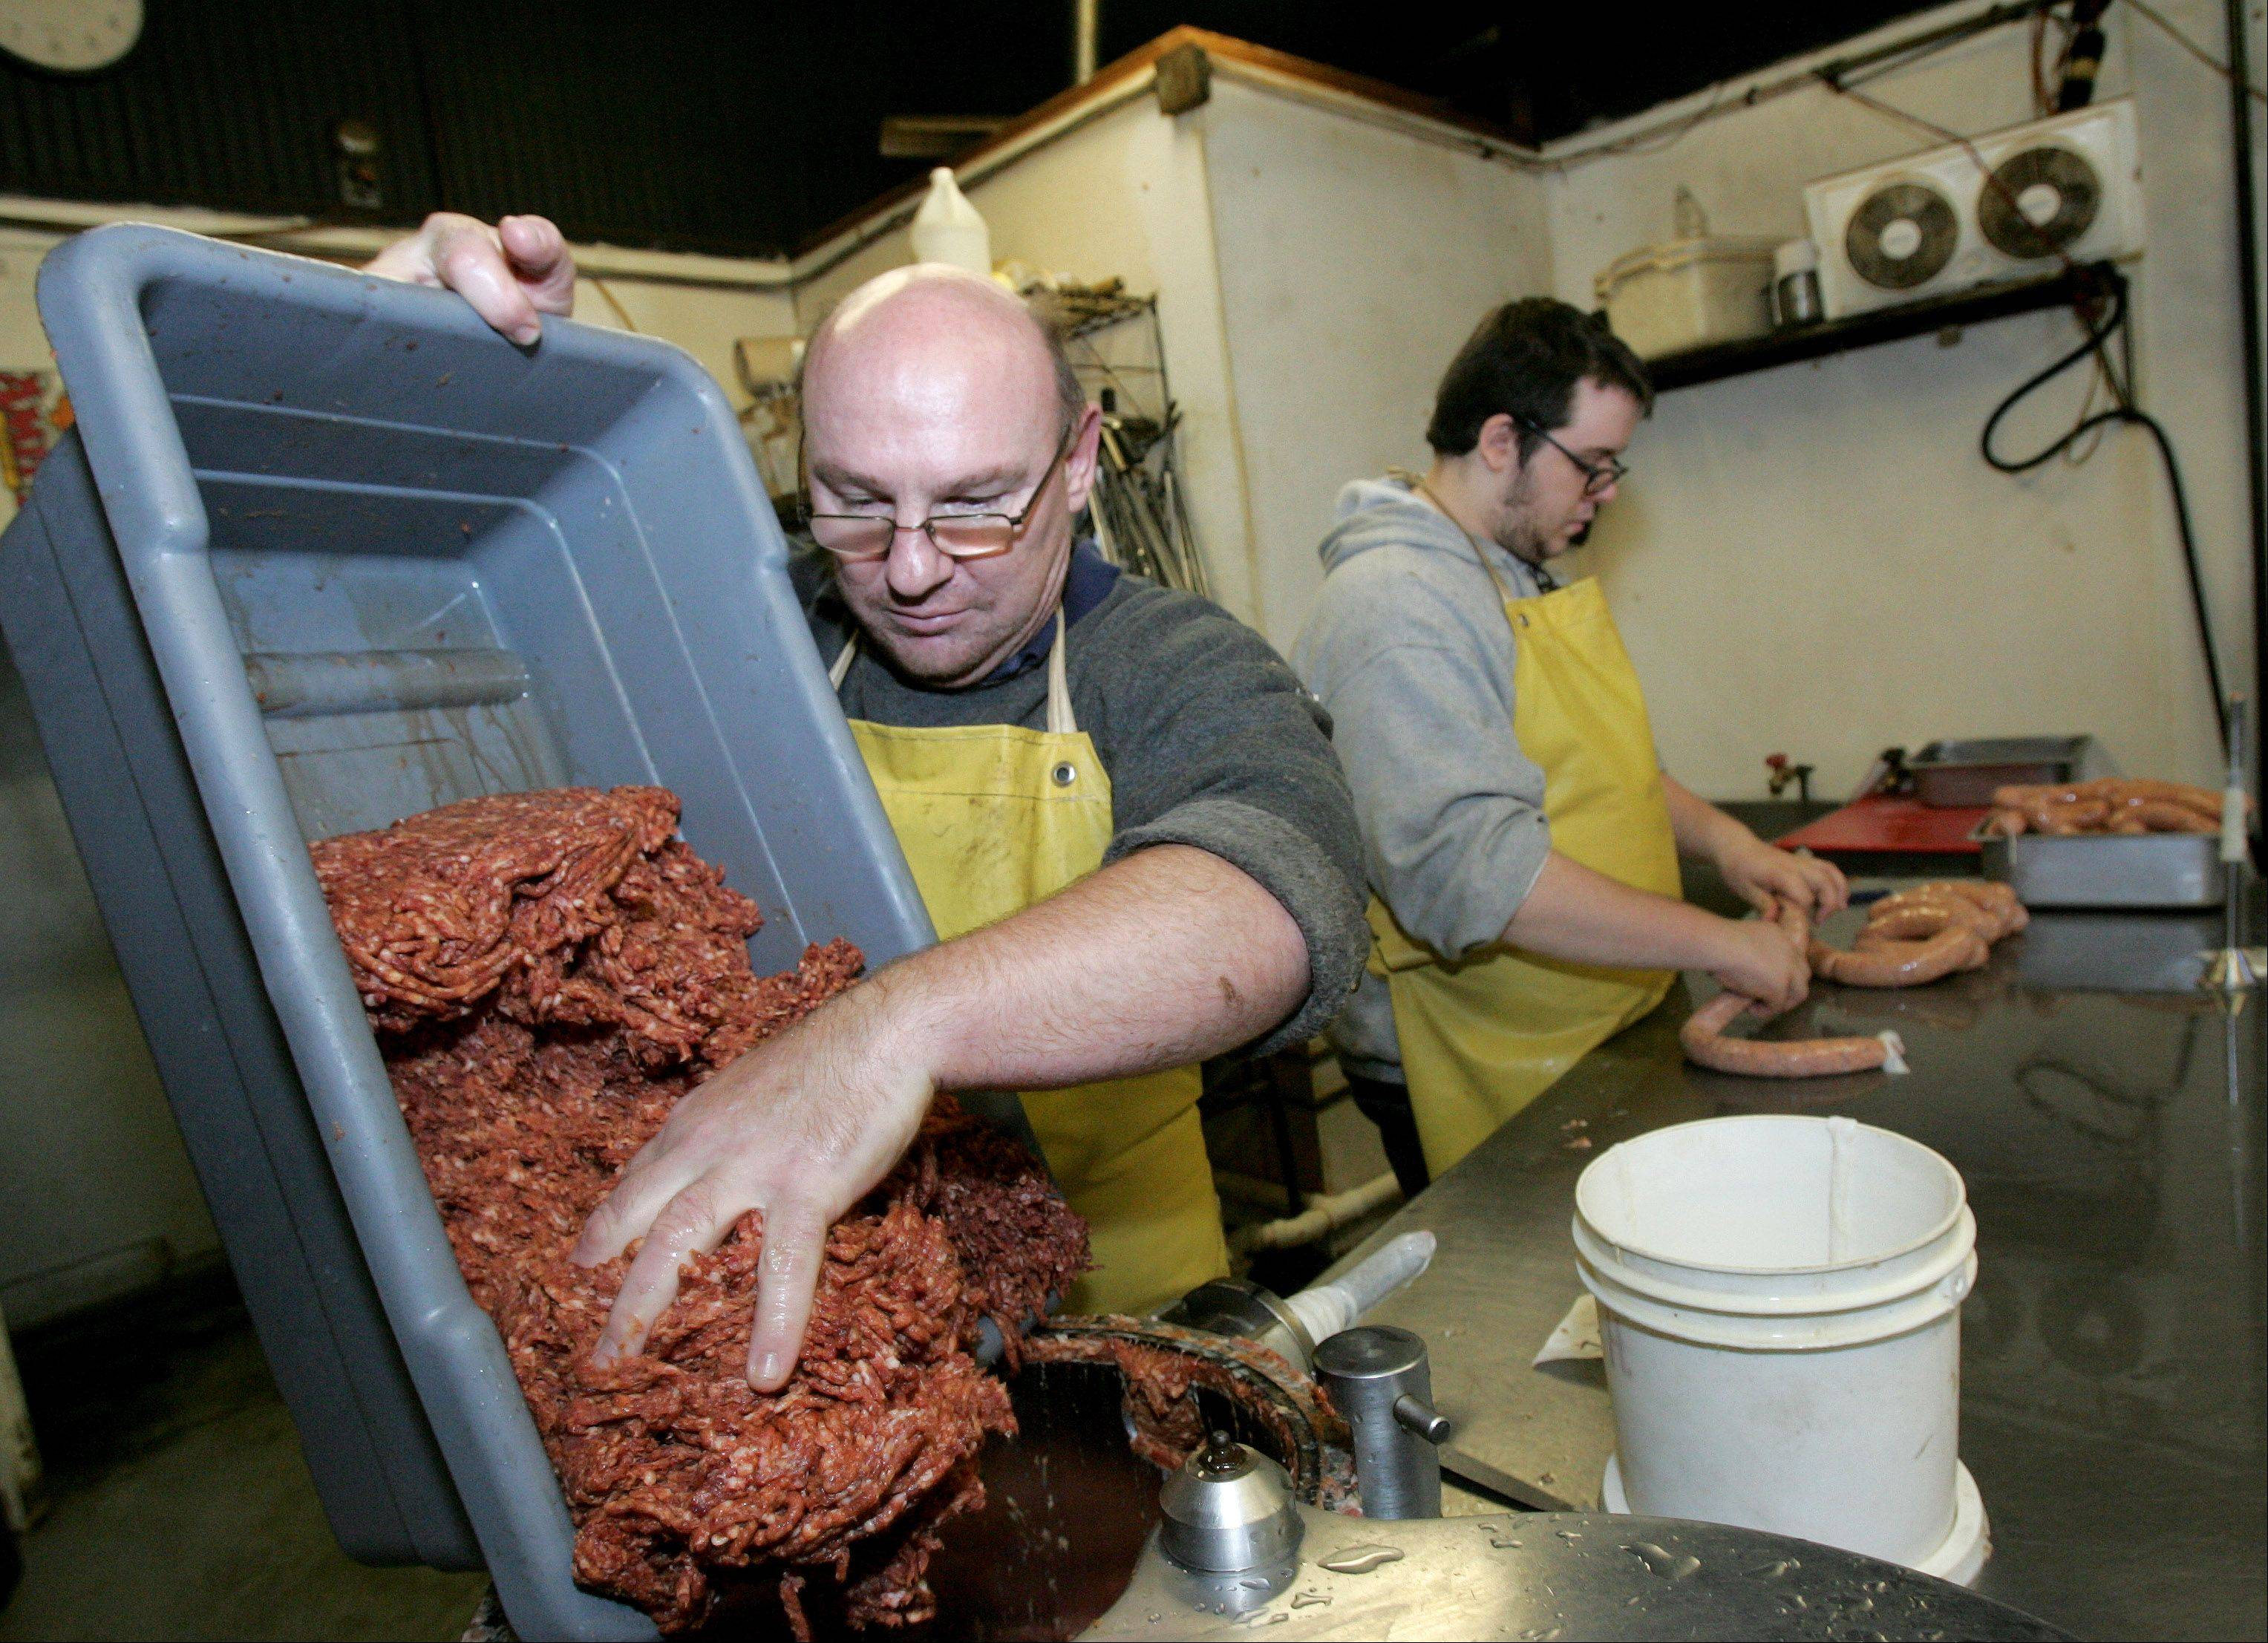 Wurst Kitchen employees Clemens Hog and Matt Tigges make hot Italian sausage, one of more than 80 kinds of sausage the shop makes.